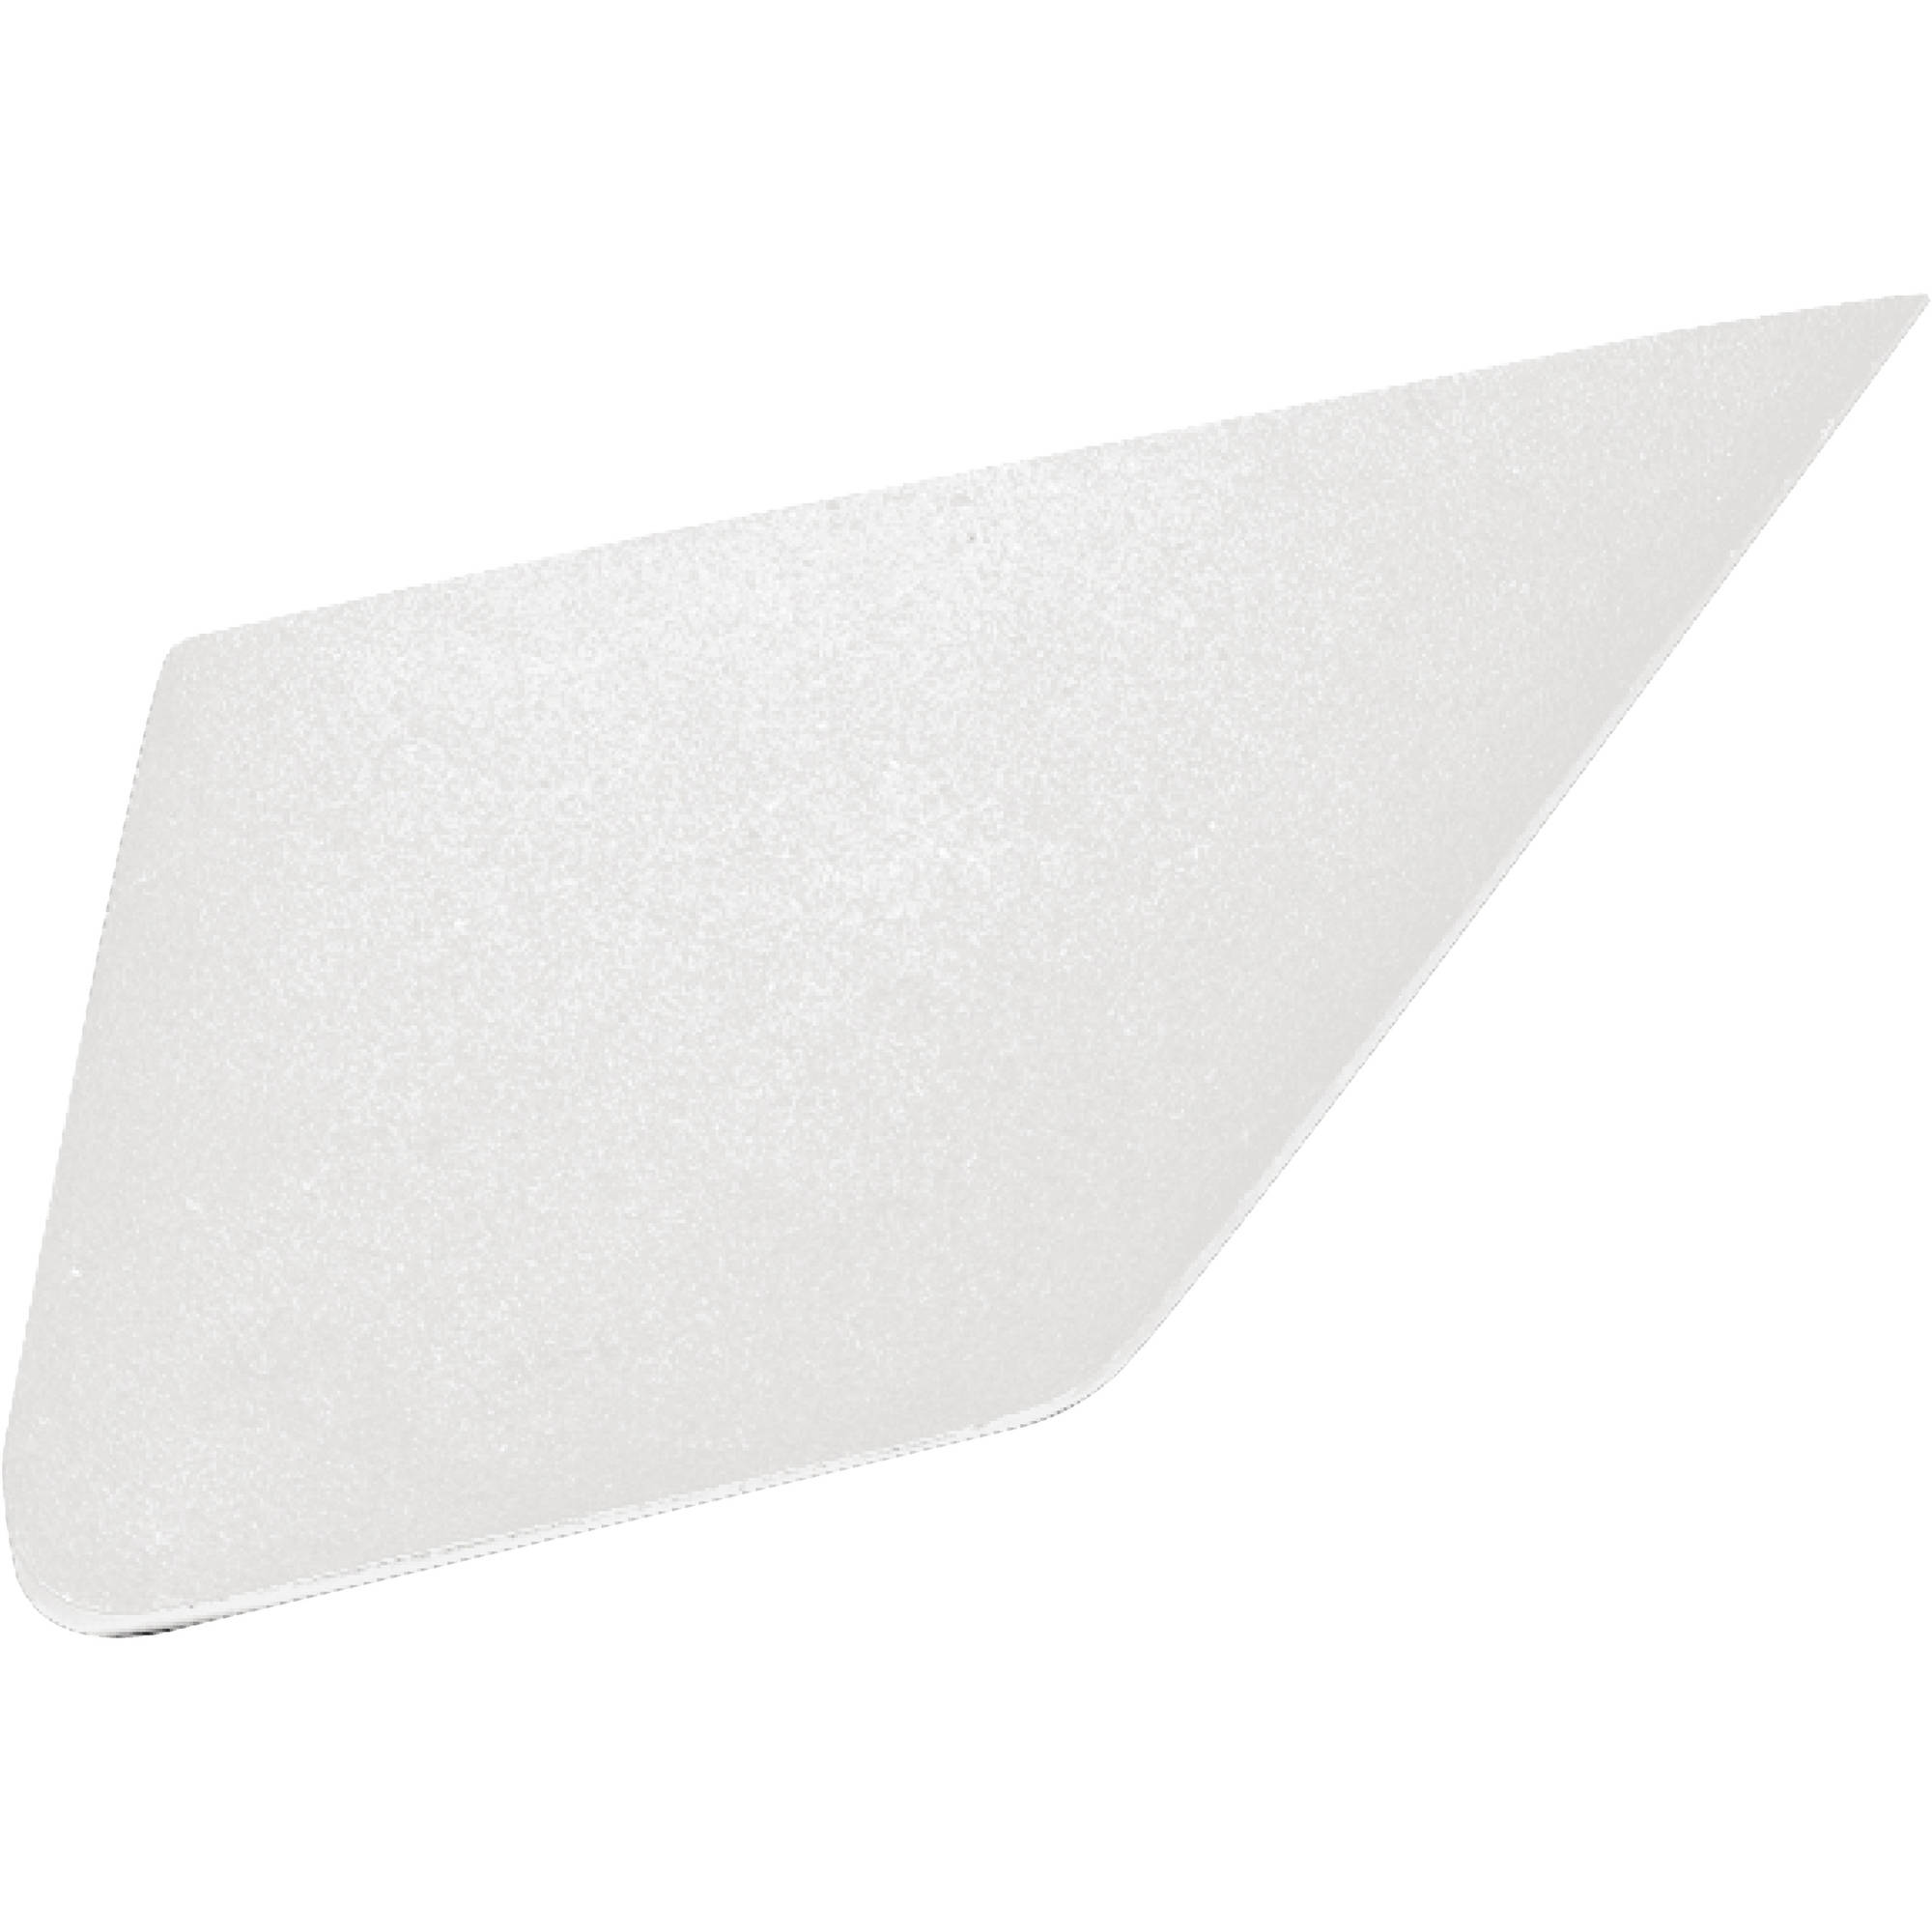 T-H Marine Replacement Skeg For Bombardier, Evinrude, Johnson, OMC, Yamaha V4 Outboards (85 to 140 HP) by T-H Marine Supplies